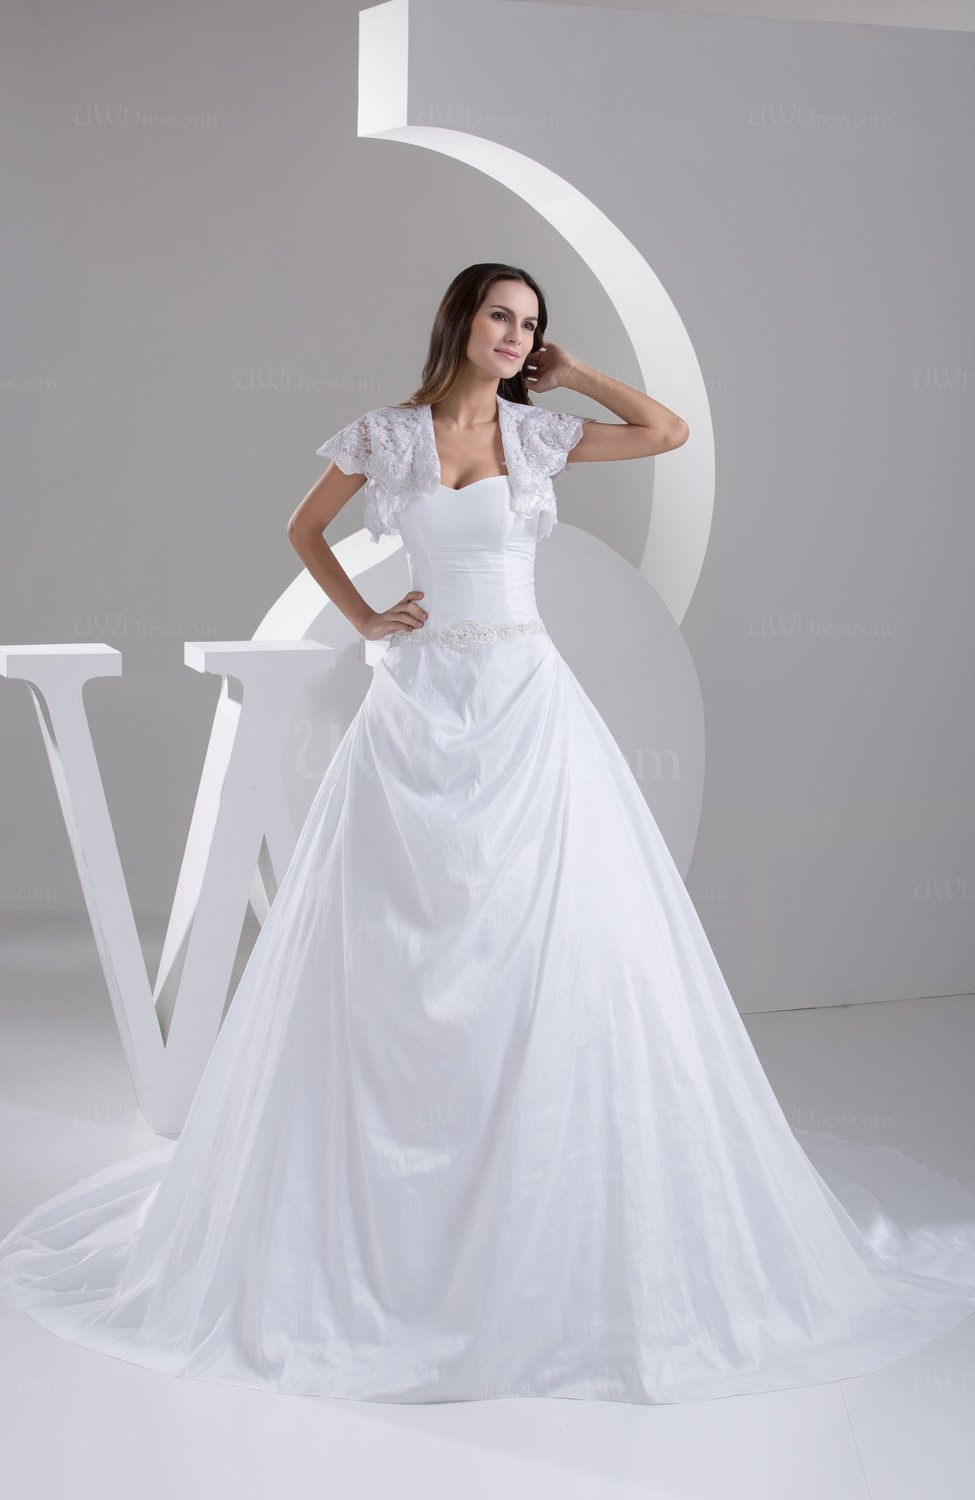 Ball Gown Bridal Gowns Beaded Fall Expensive Spring Unique Amazing ...